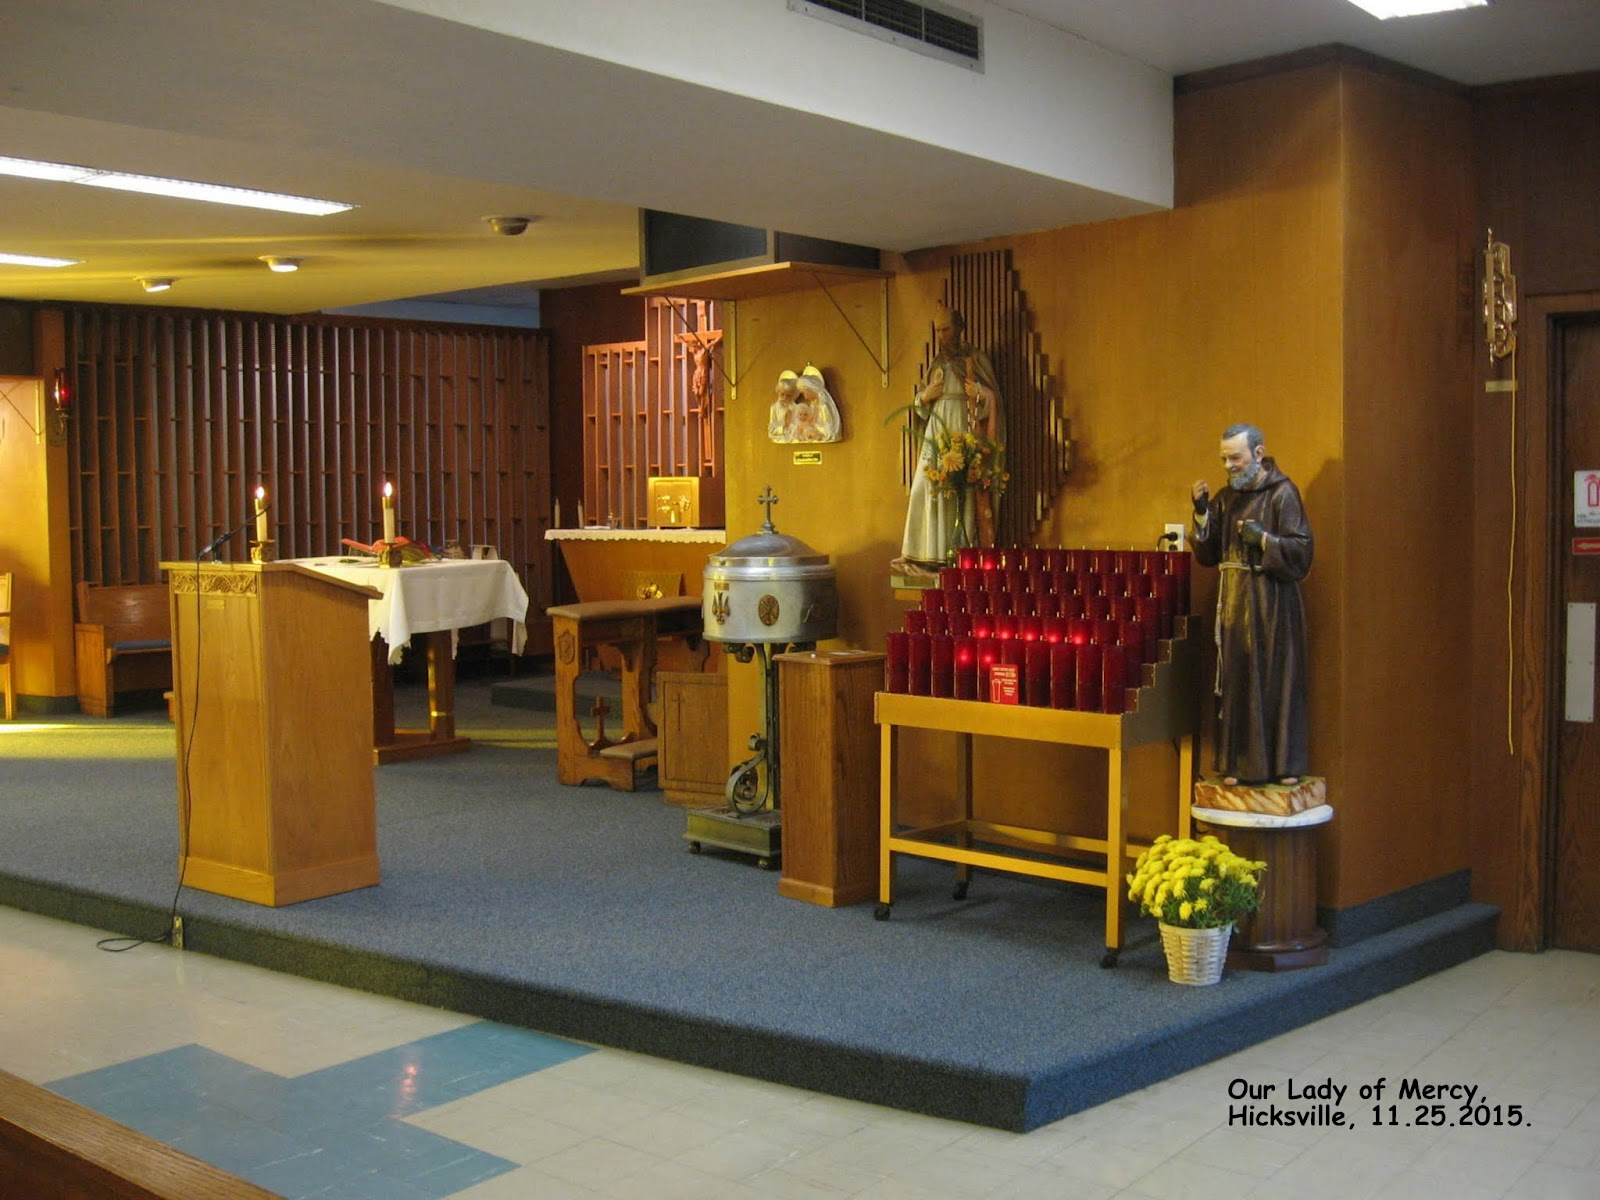 catholic singles in hicksville This blog may evolve as a mixture of the history and geography of catholic our lady of mercy, hicksville and the parish is surrounded by single.